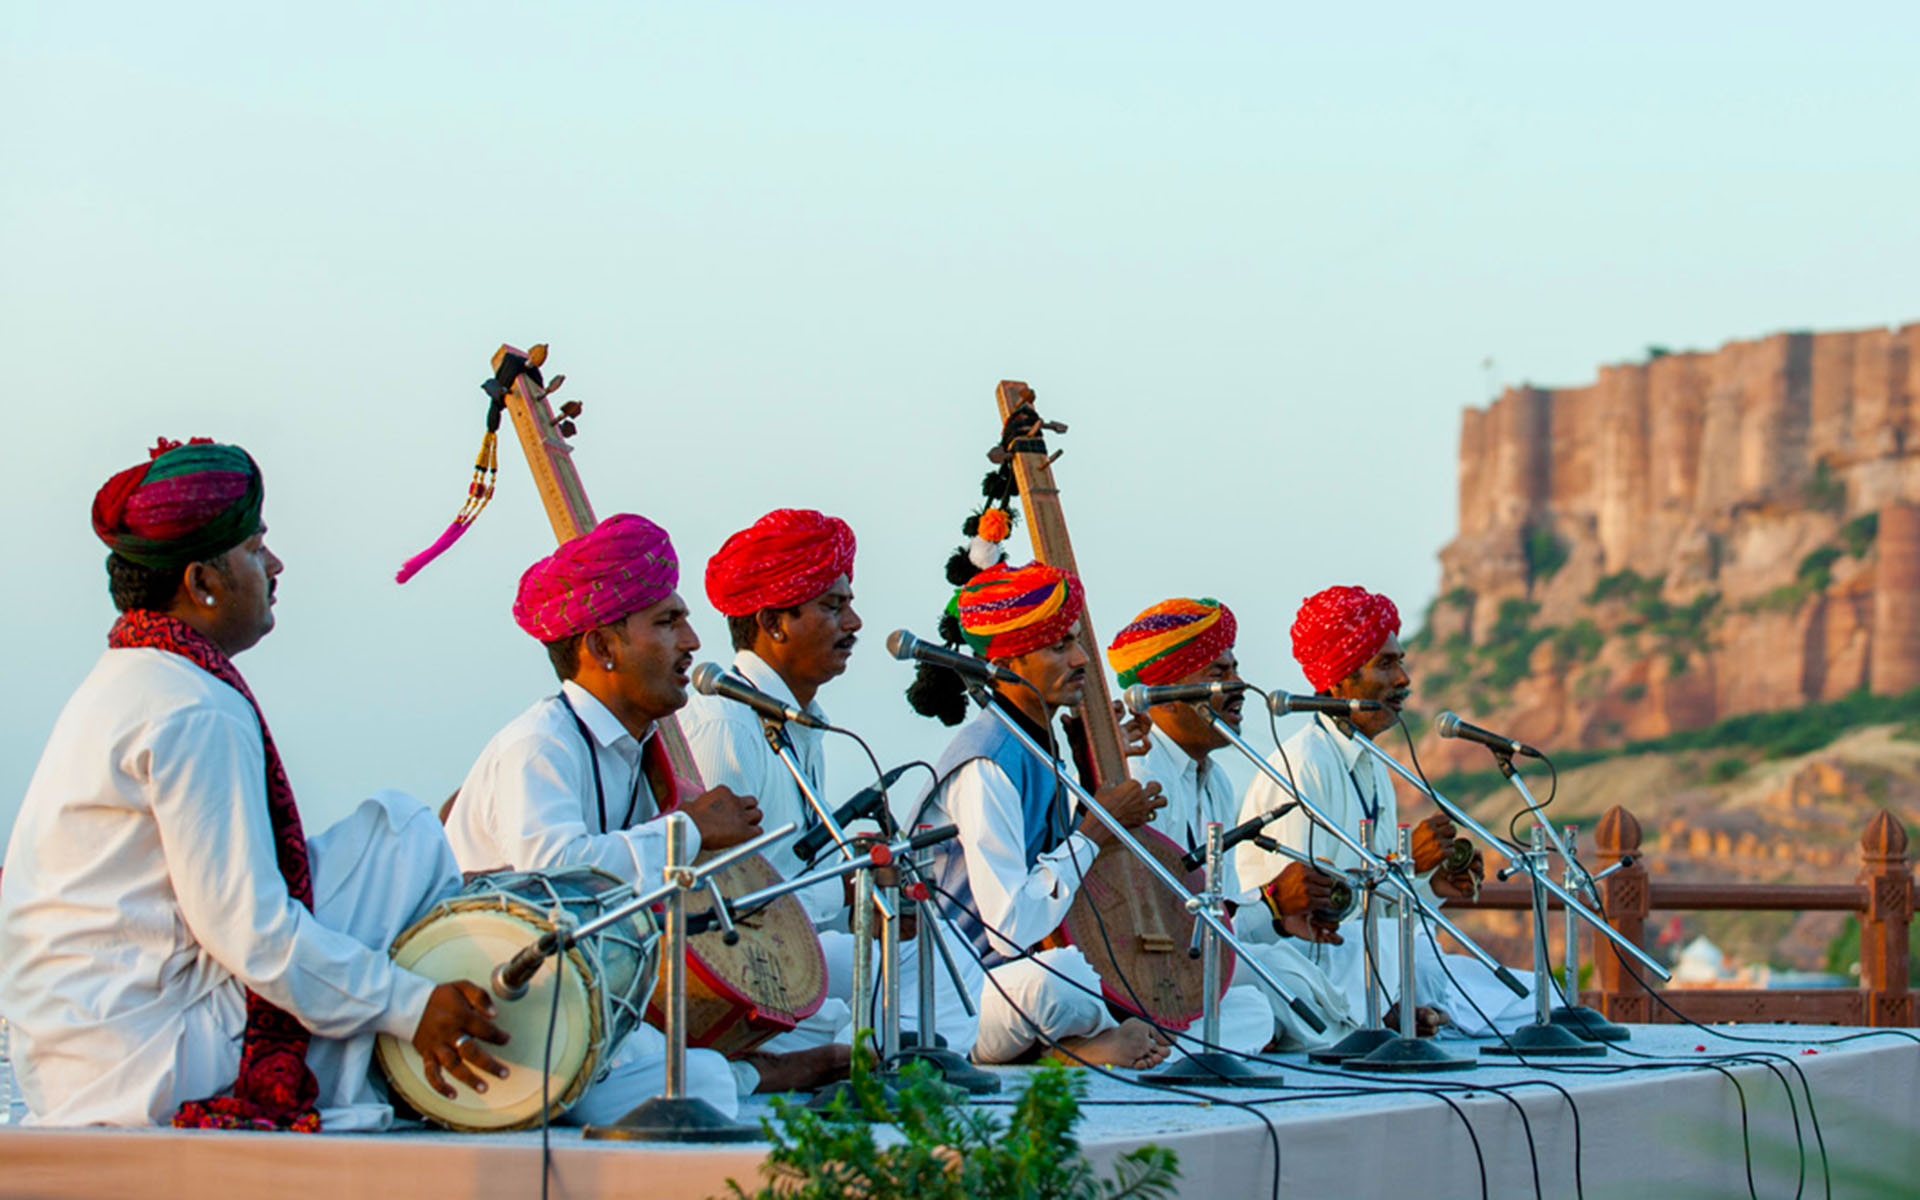 Rajasthan – The Land of Kings